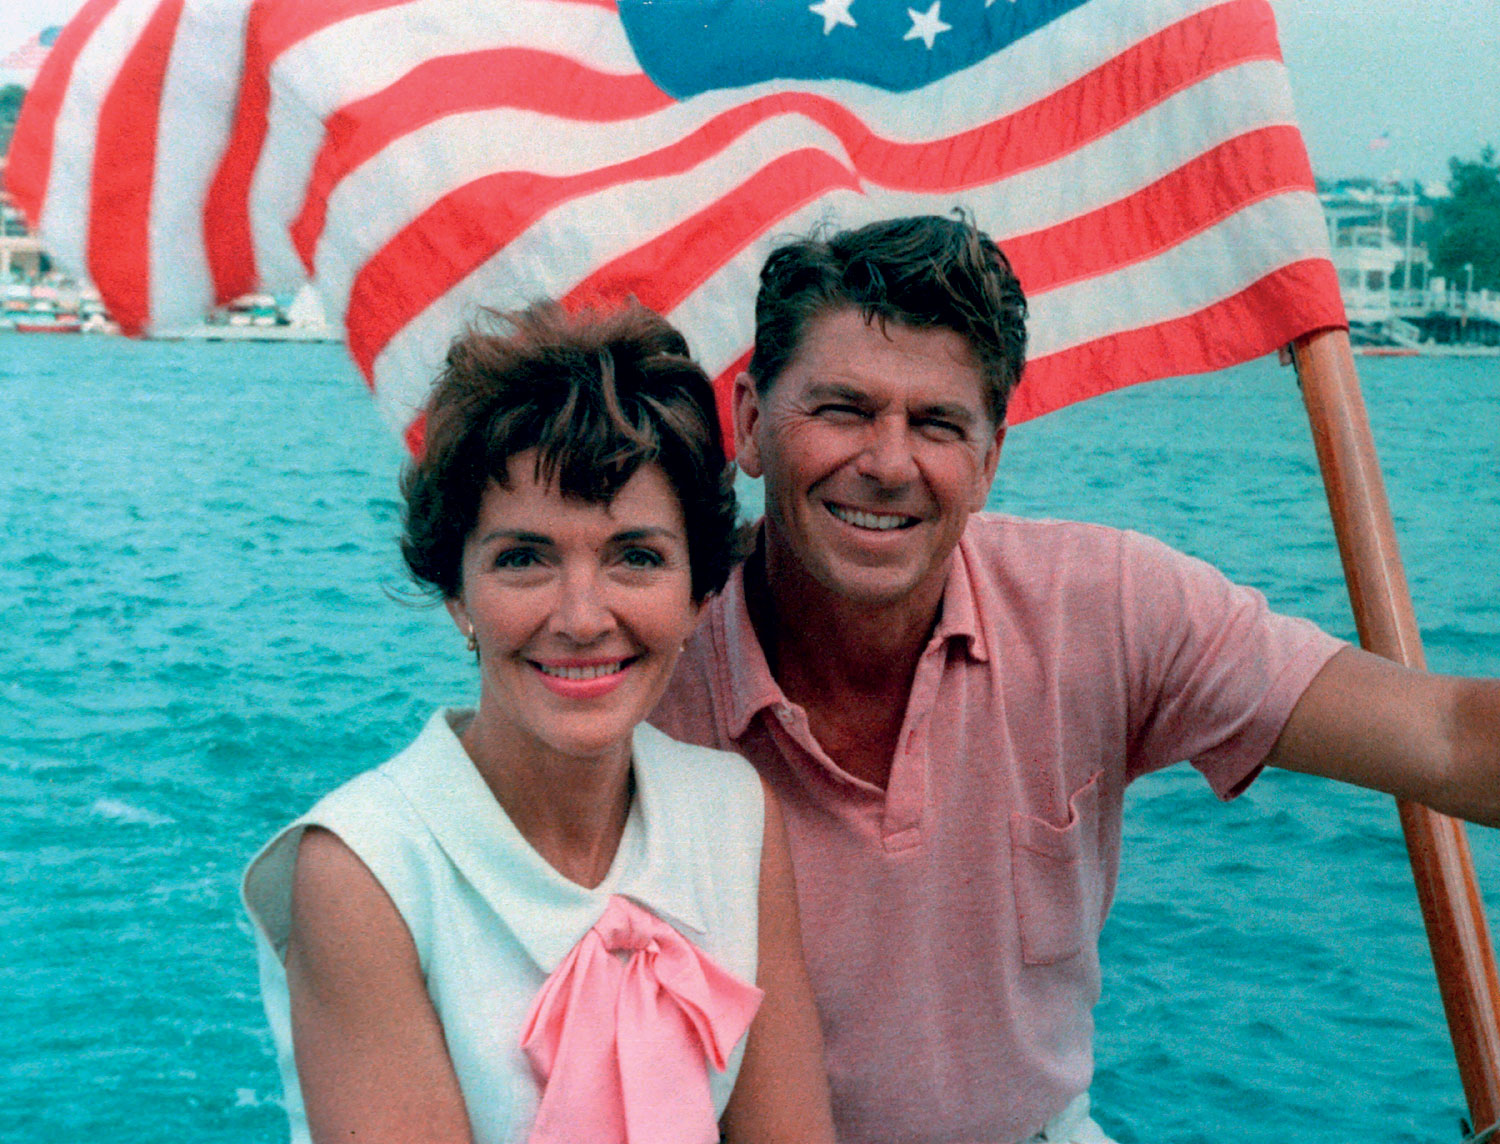 Ronald Reagan and Nancy Reagan aboard a boat in California. August 1964. Courtesy of the Ronald Reagan Presidential Foundation and Library. Photographer unknown.